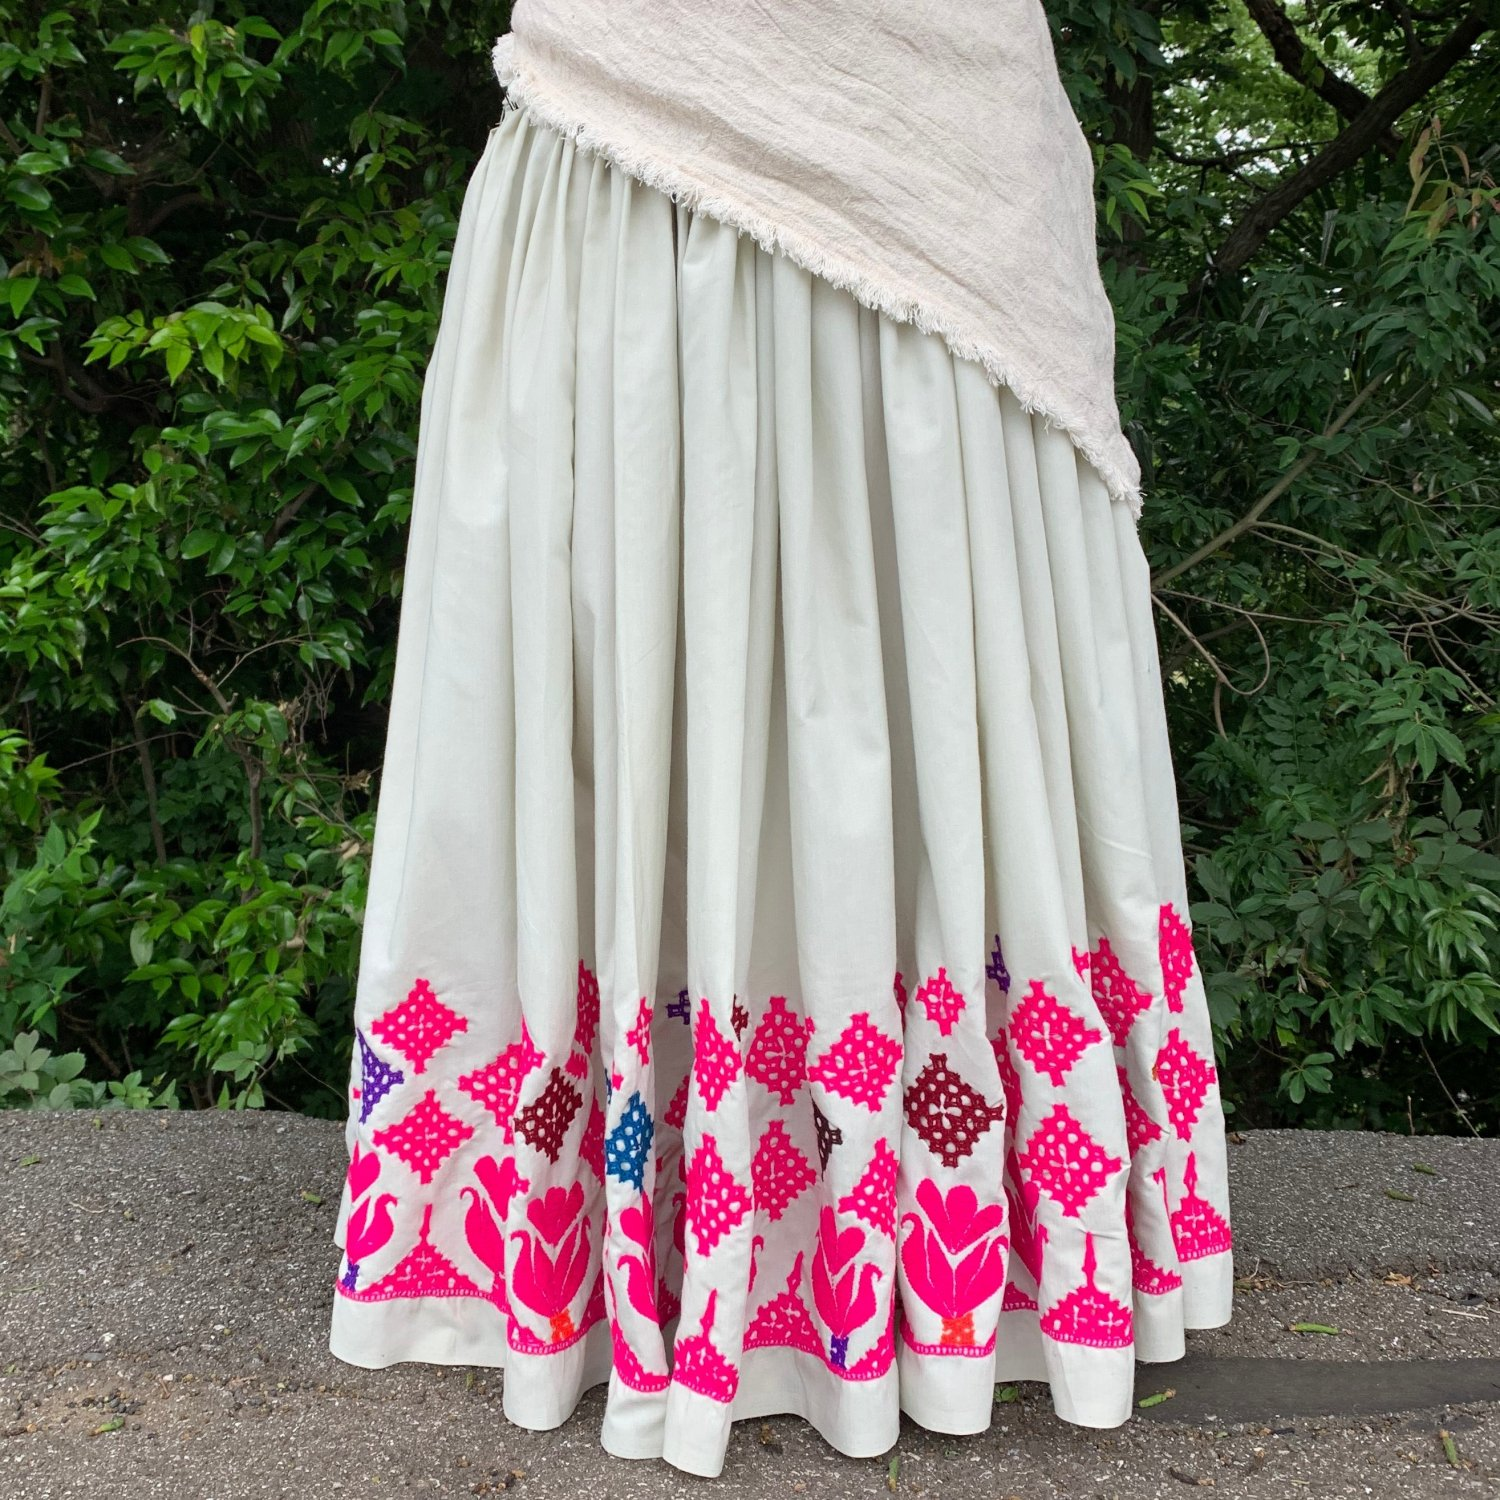 <img class='new_mark_img1' src='https://img.shop-pro.jp/img/new/icons1.gif' style='border:none;display:inline;margin:0px;padding:0px;width:auto;' />Rajasthani gypsy skirt #* vintage * インド刺繍スカート バンジャラ《ライト》